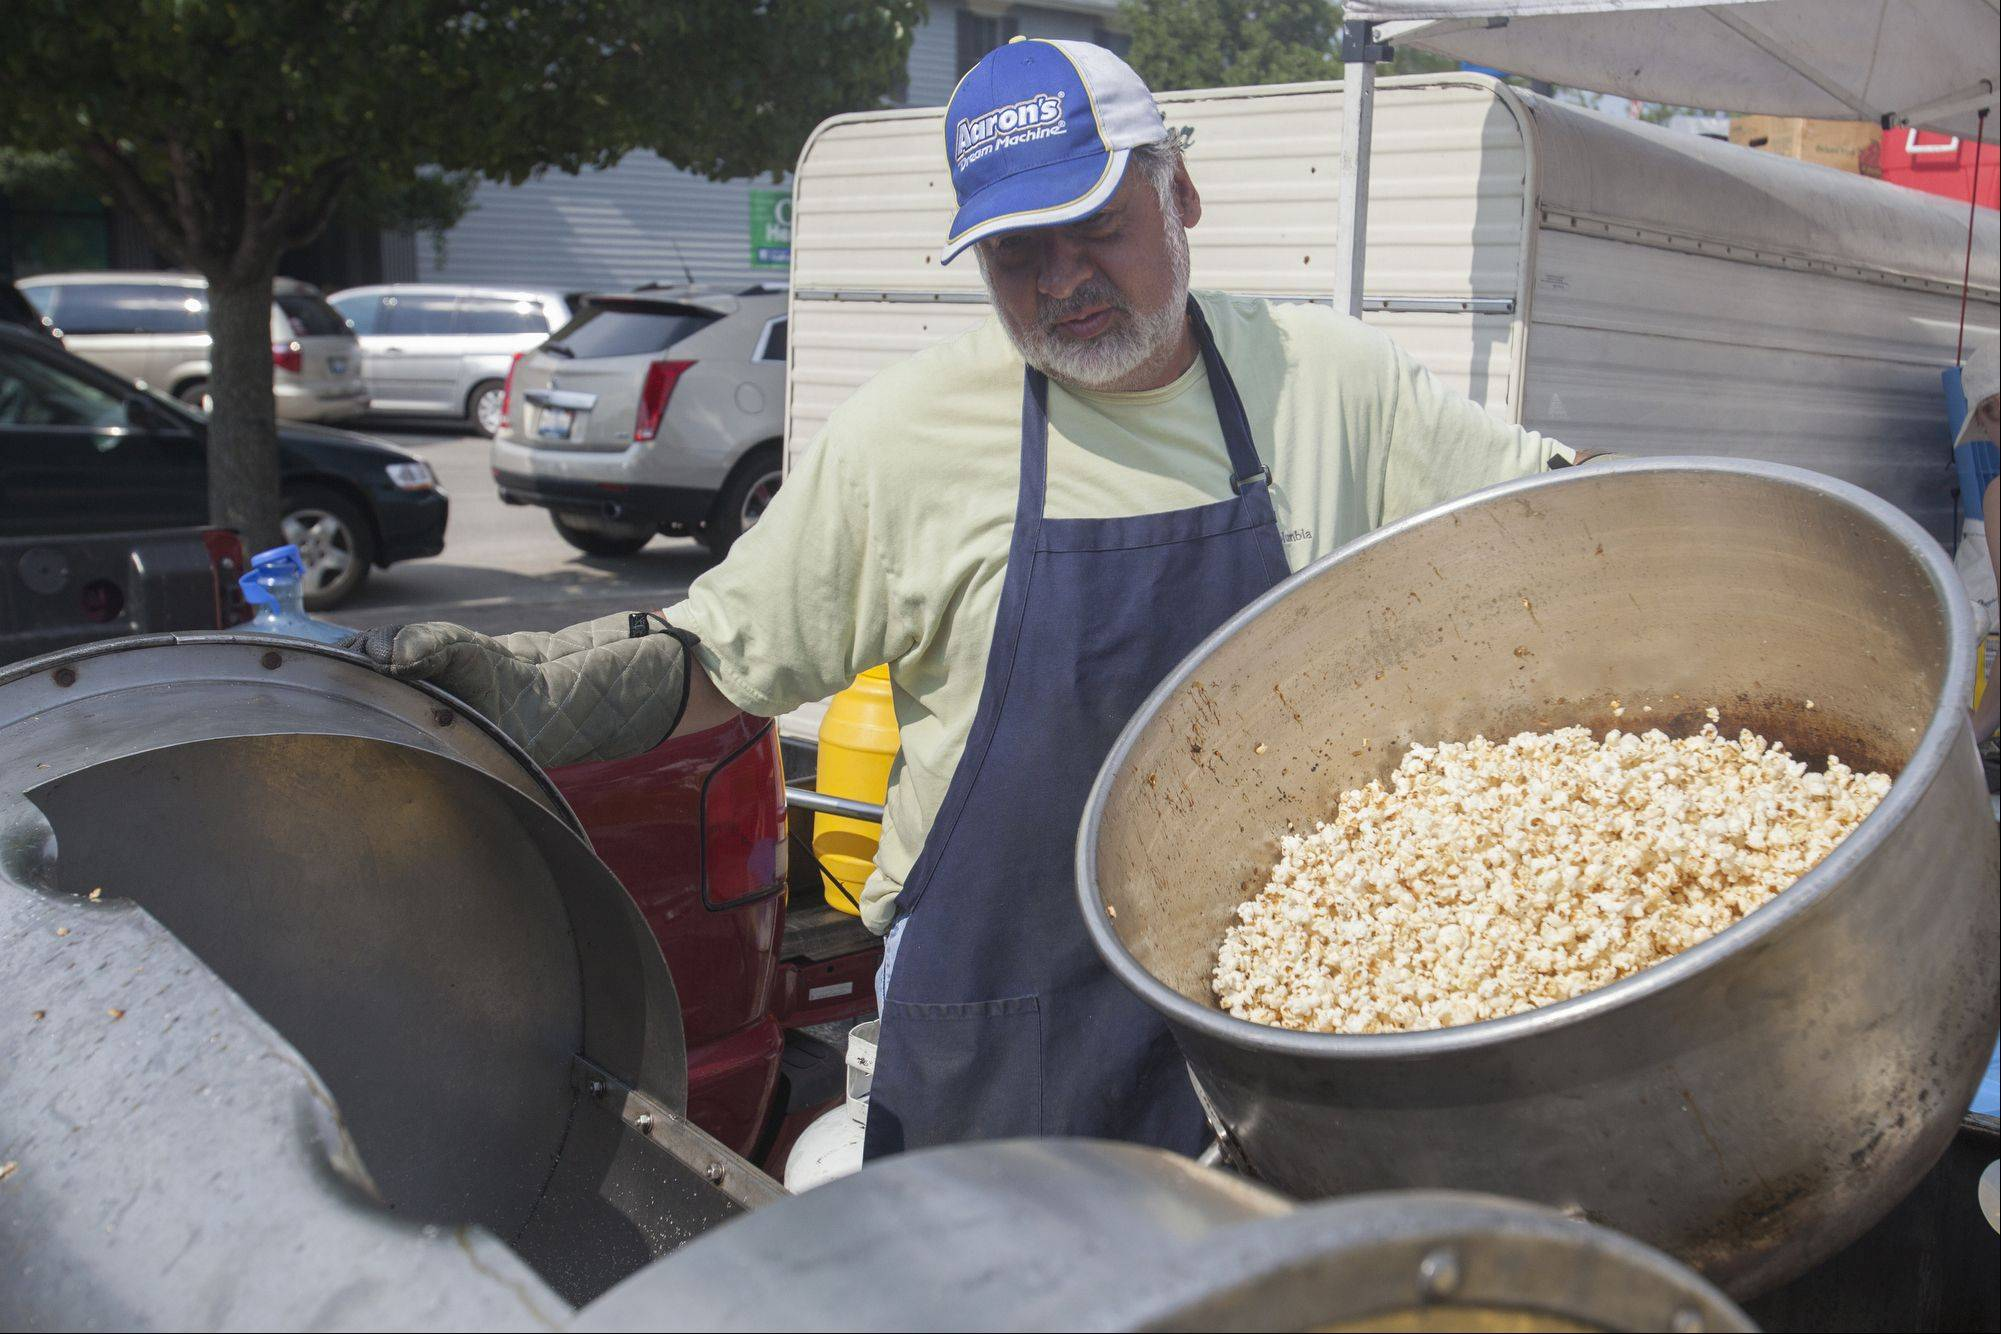 Caros Vidrio pours popcorn into warmer during Mundelein's Farmers Market, located on the corner of Seymour and Park streets.